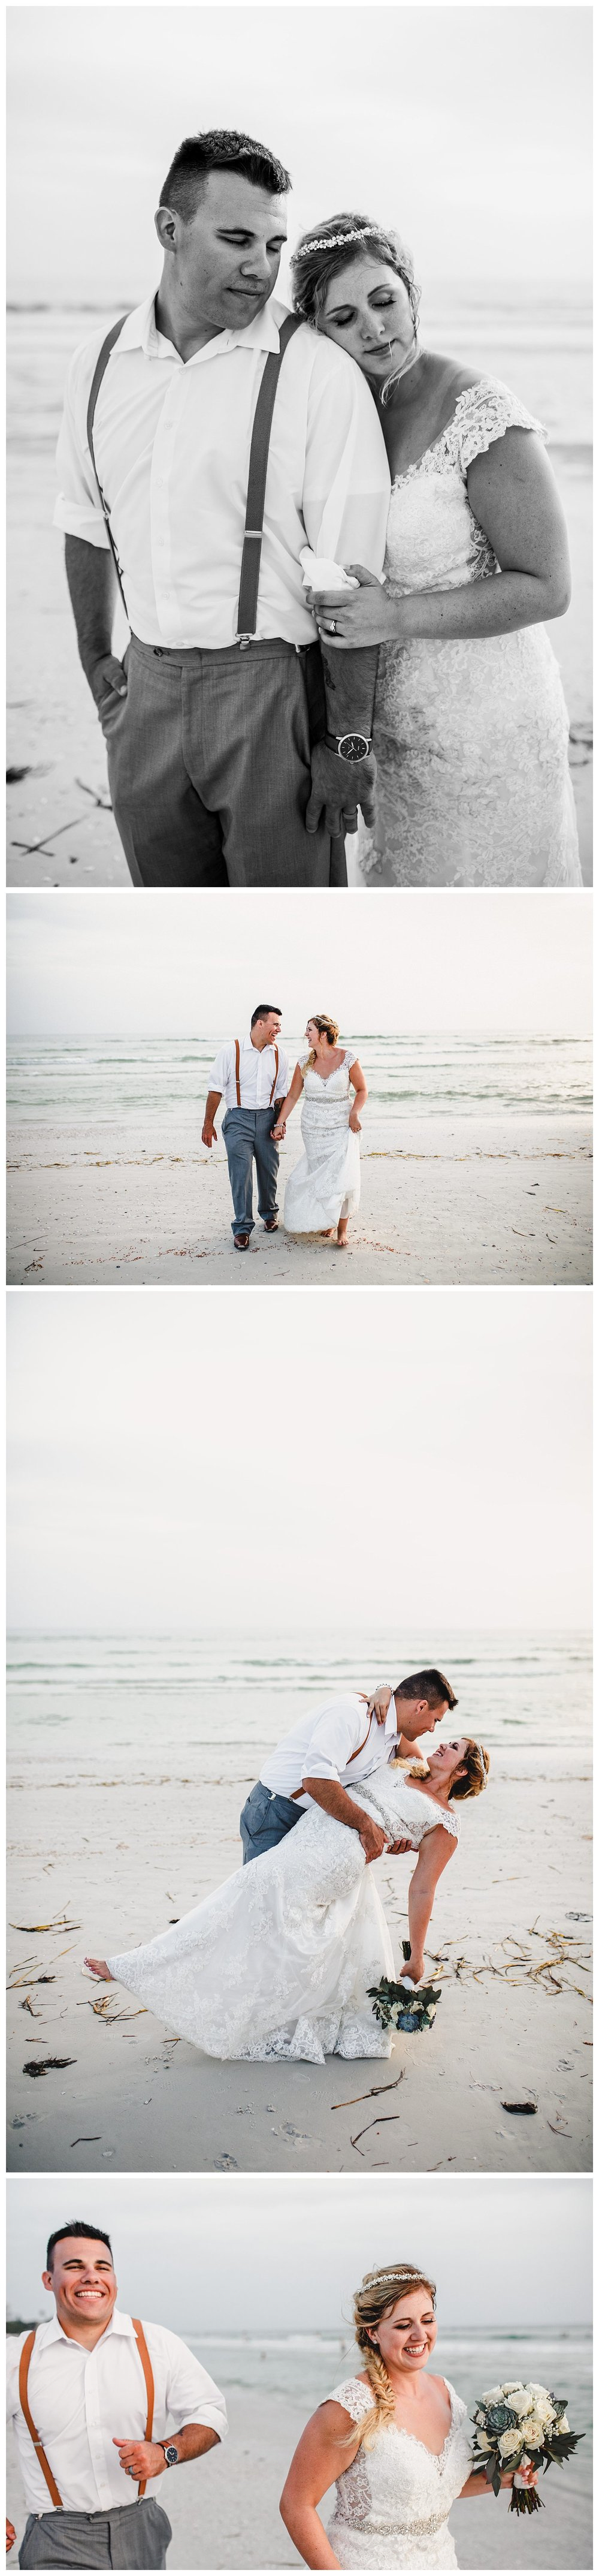 Kelsey_Diane_Photography_Destination_Wedding_Sarasota_Florida_Beach_Wedding_Alex_Austin_0682.jpg